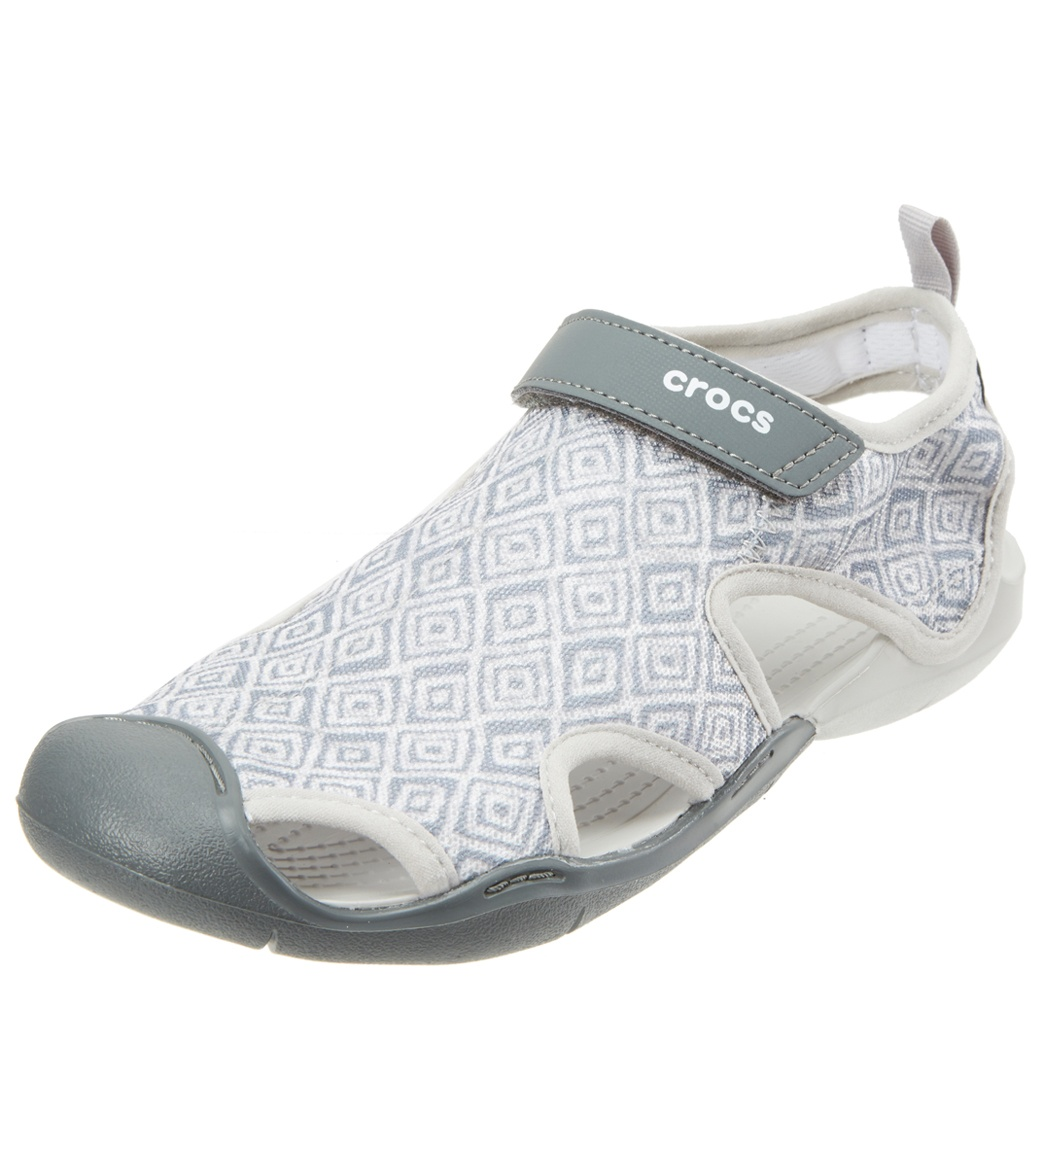 20d5aa317ad7ce Crocs Women s Swiftwater Graphic Mesh Sandal at SwimOutlet.com - Free  Shipping